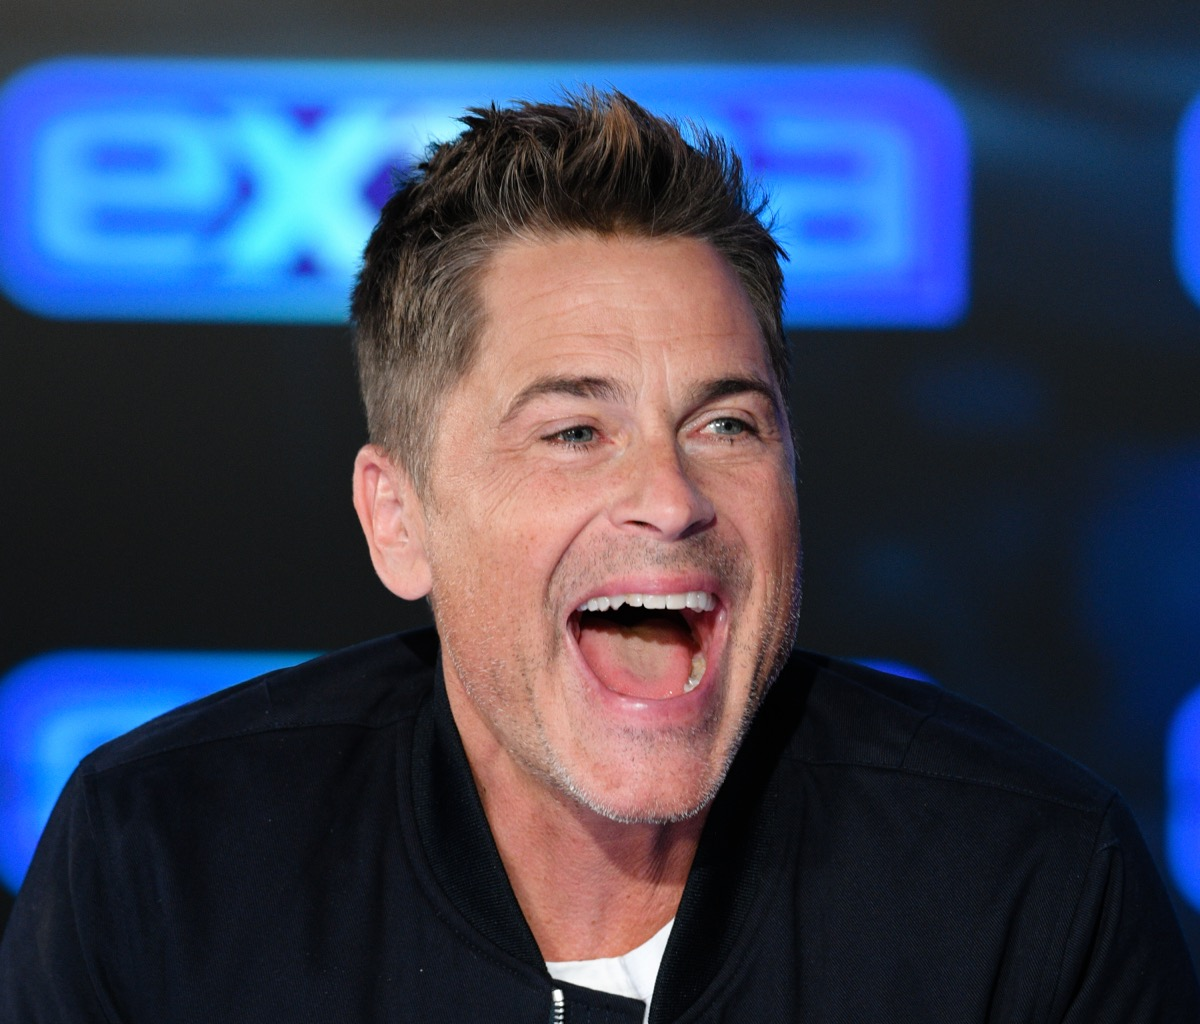 rob lowe laughing in interview